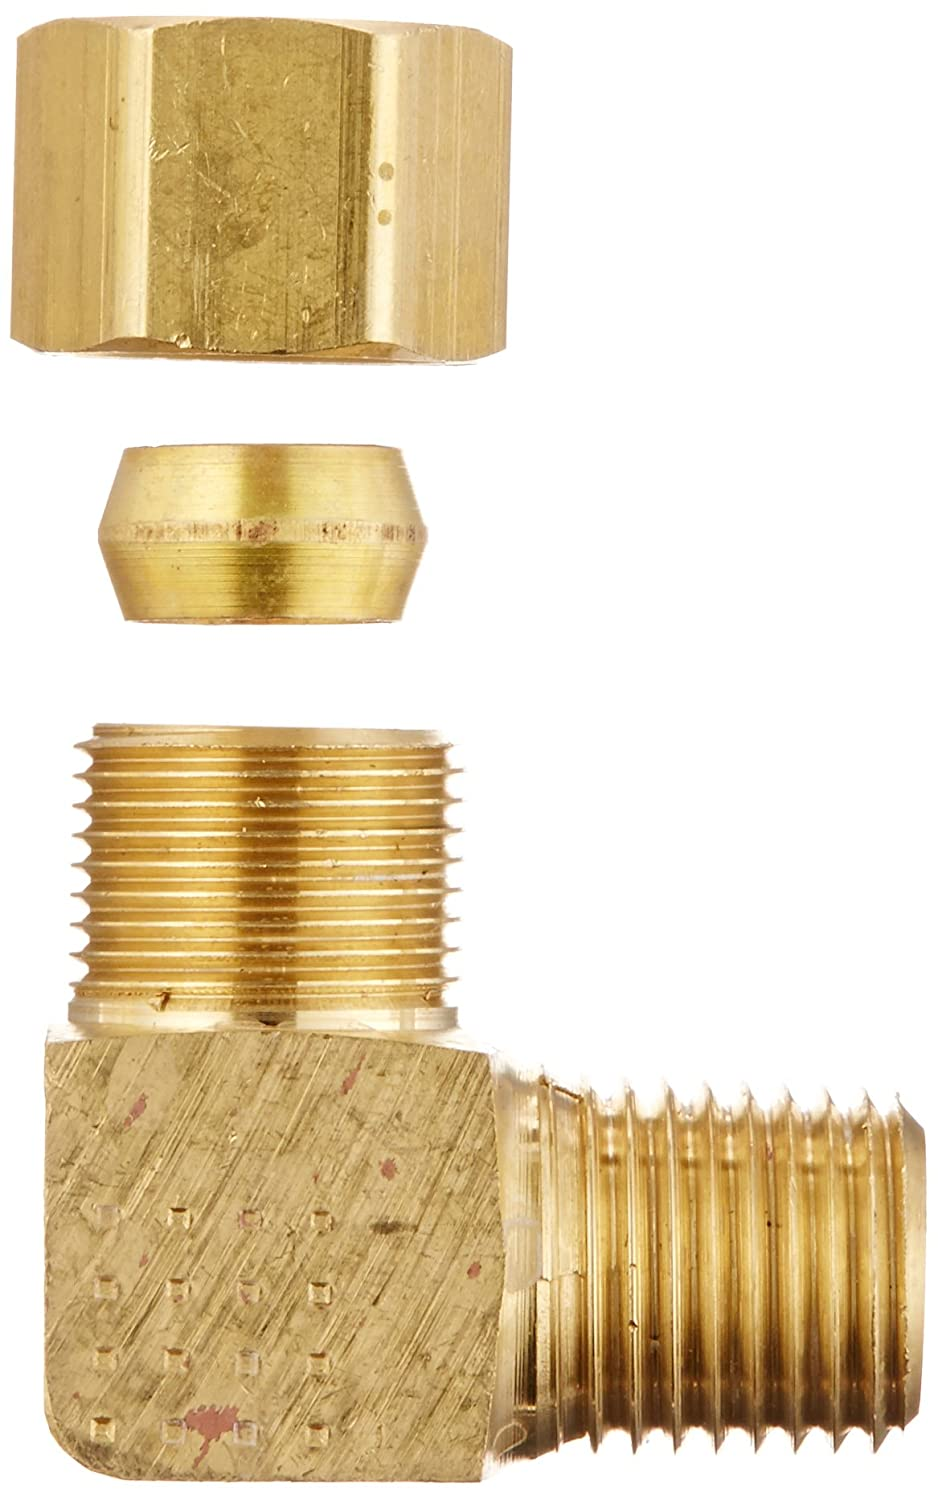 EATON Weatherhead 69X6 Male Elbow 3//8 Tube OD 1//4 Male Pipe Size 1//4 Male Pipe Size CA360 Brass Eaton Products Pack of 10 3//8 Tube OD Pack of 10